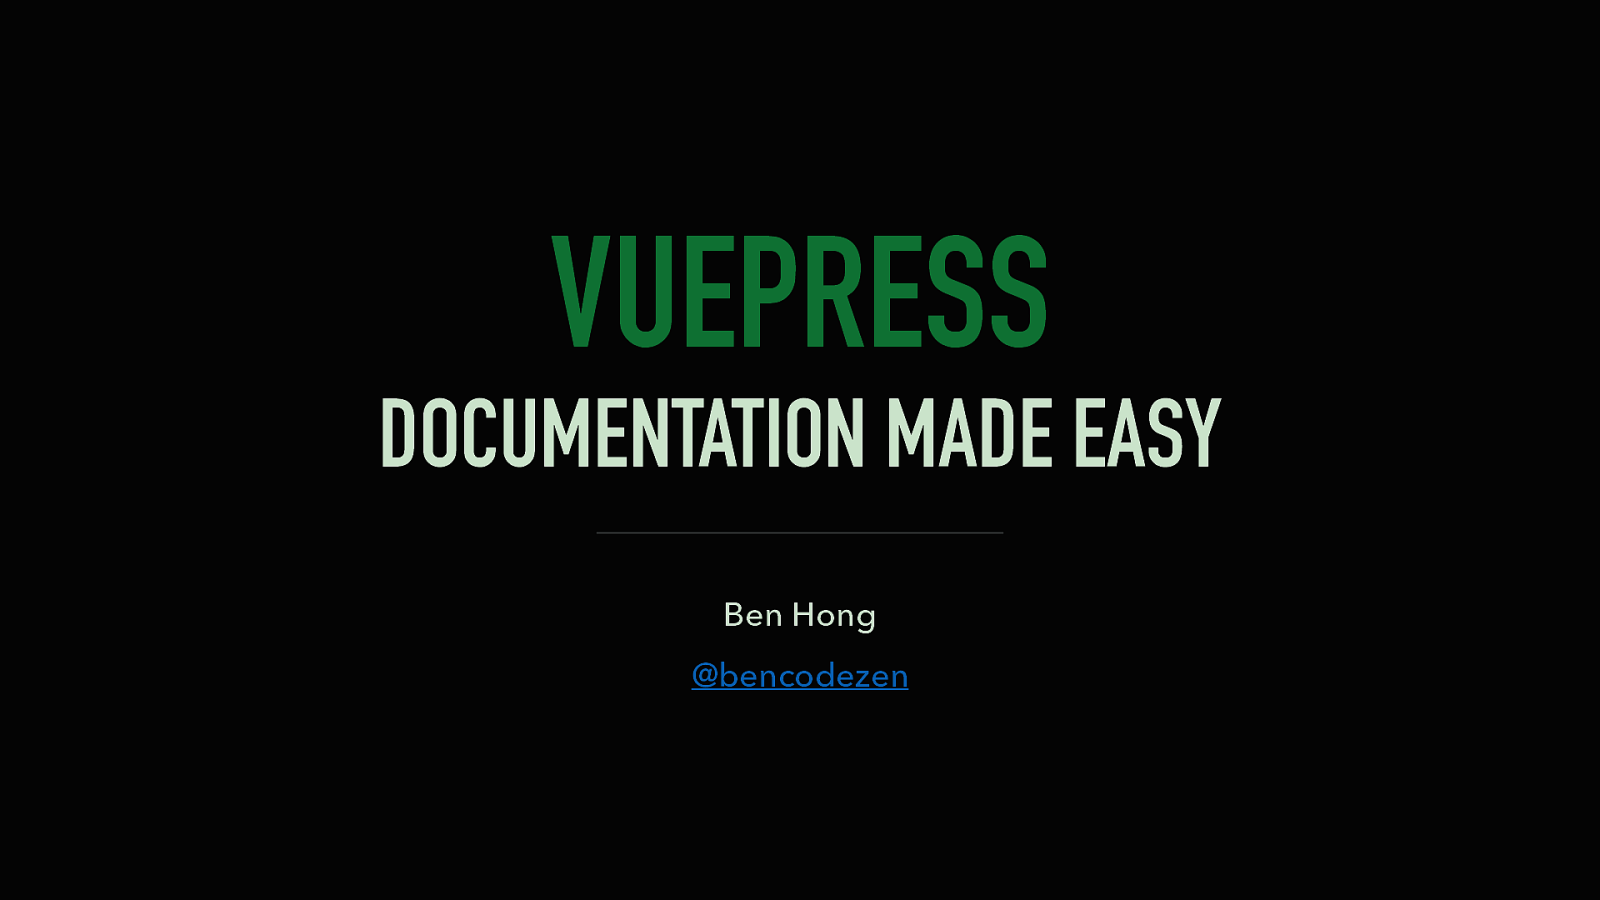 VuePress: Documentation Made Easy